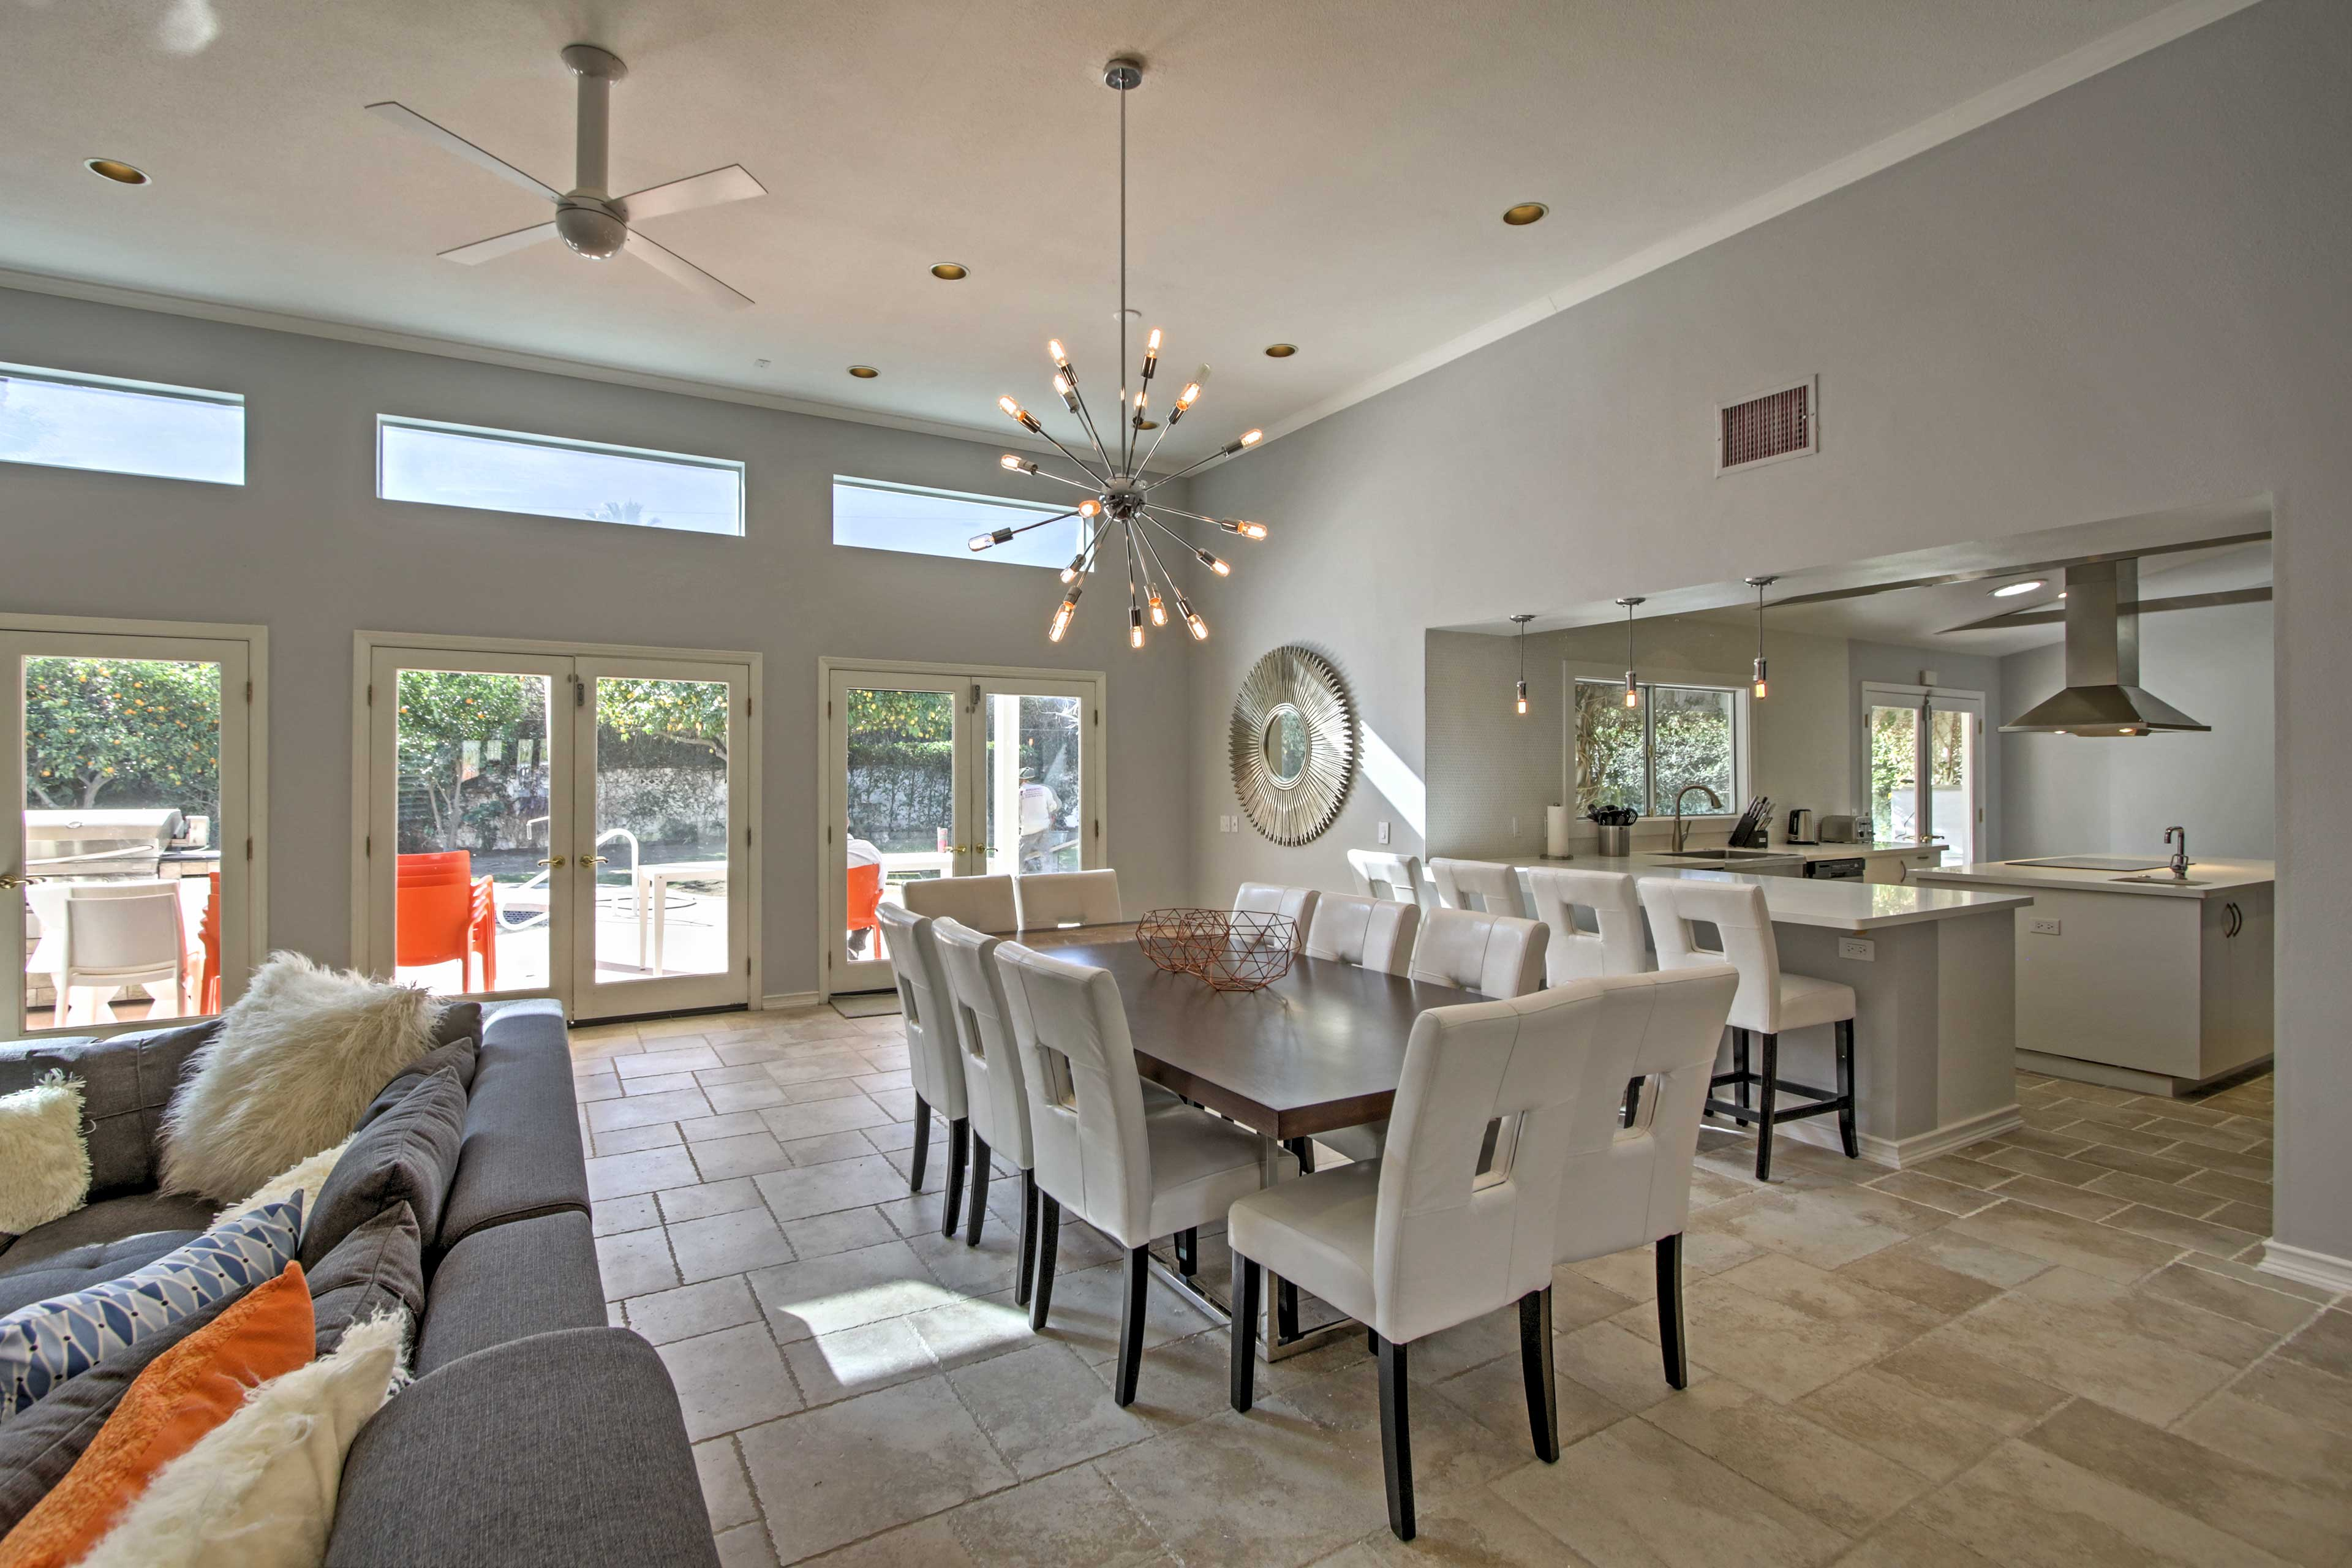 Enjoy a meal at the large dining table.